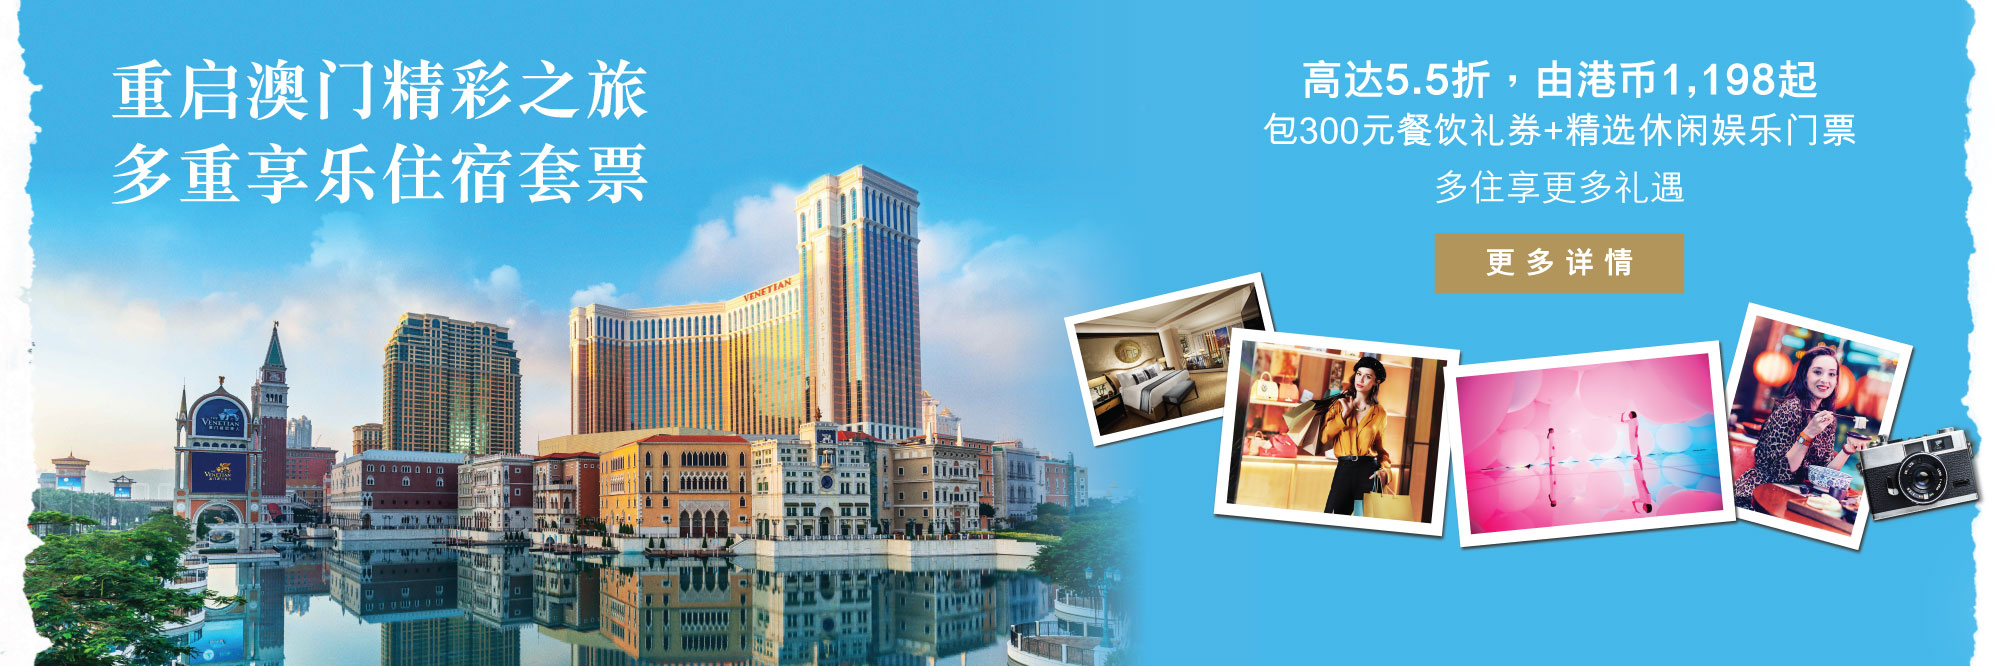 https://assets.sandsresortsmacao.cn/content/venetianmacao/promotions/hotel/suite-experience/venetian-suite-experience_homepage-banner_2000x666_sc_0912.jpg  https://www.sandsresortsmacao.cn/promotions/hotel/suite-experience.html